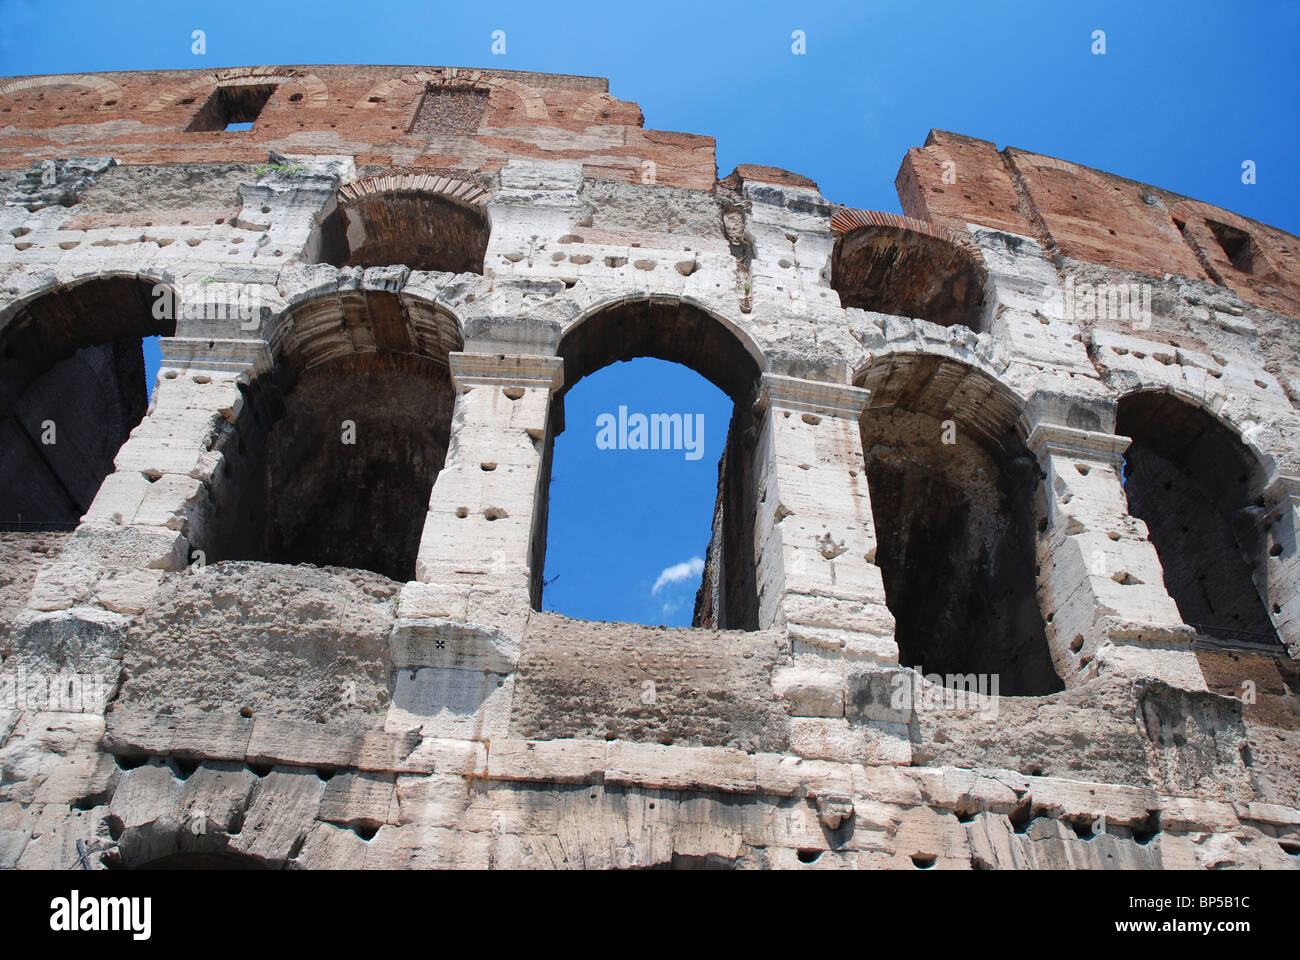 Wall of the Colosseum (or Coliseum), Rome, Italy - Stock Image